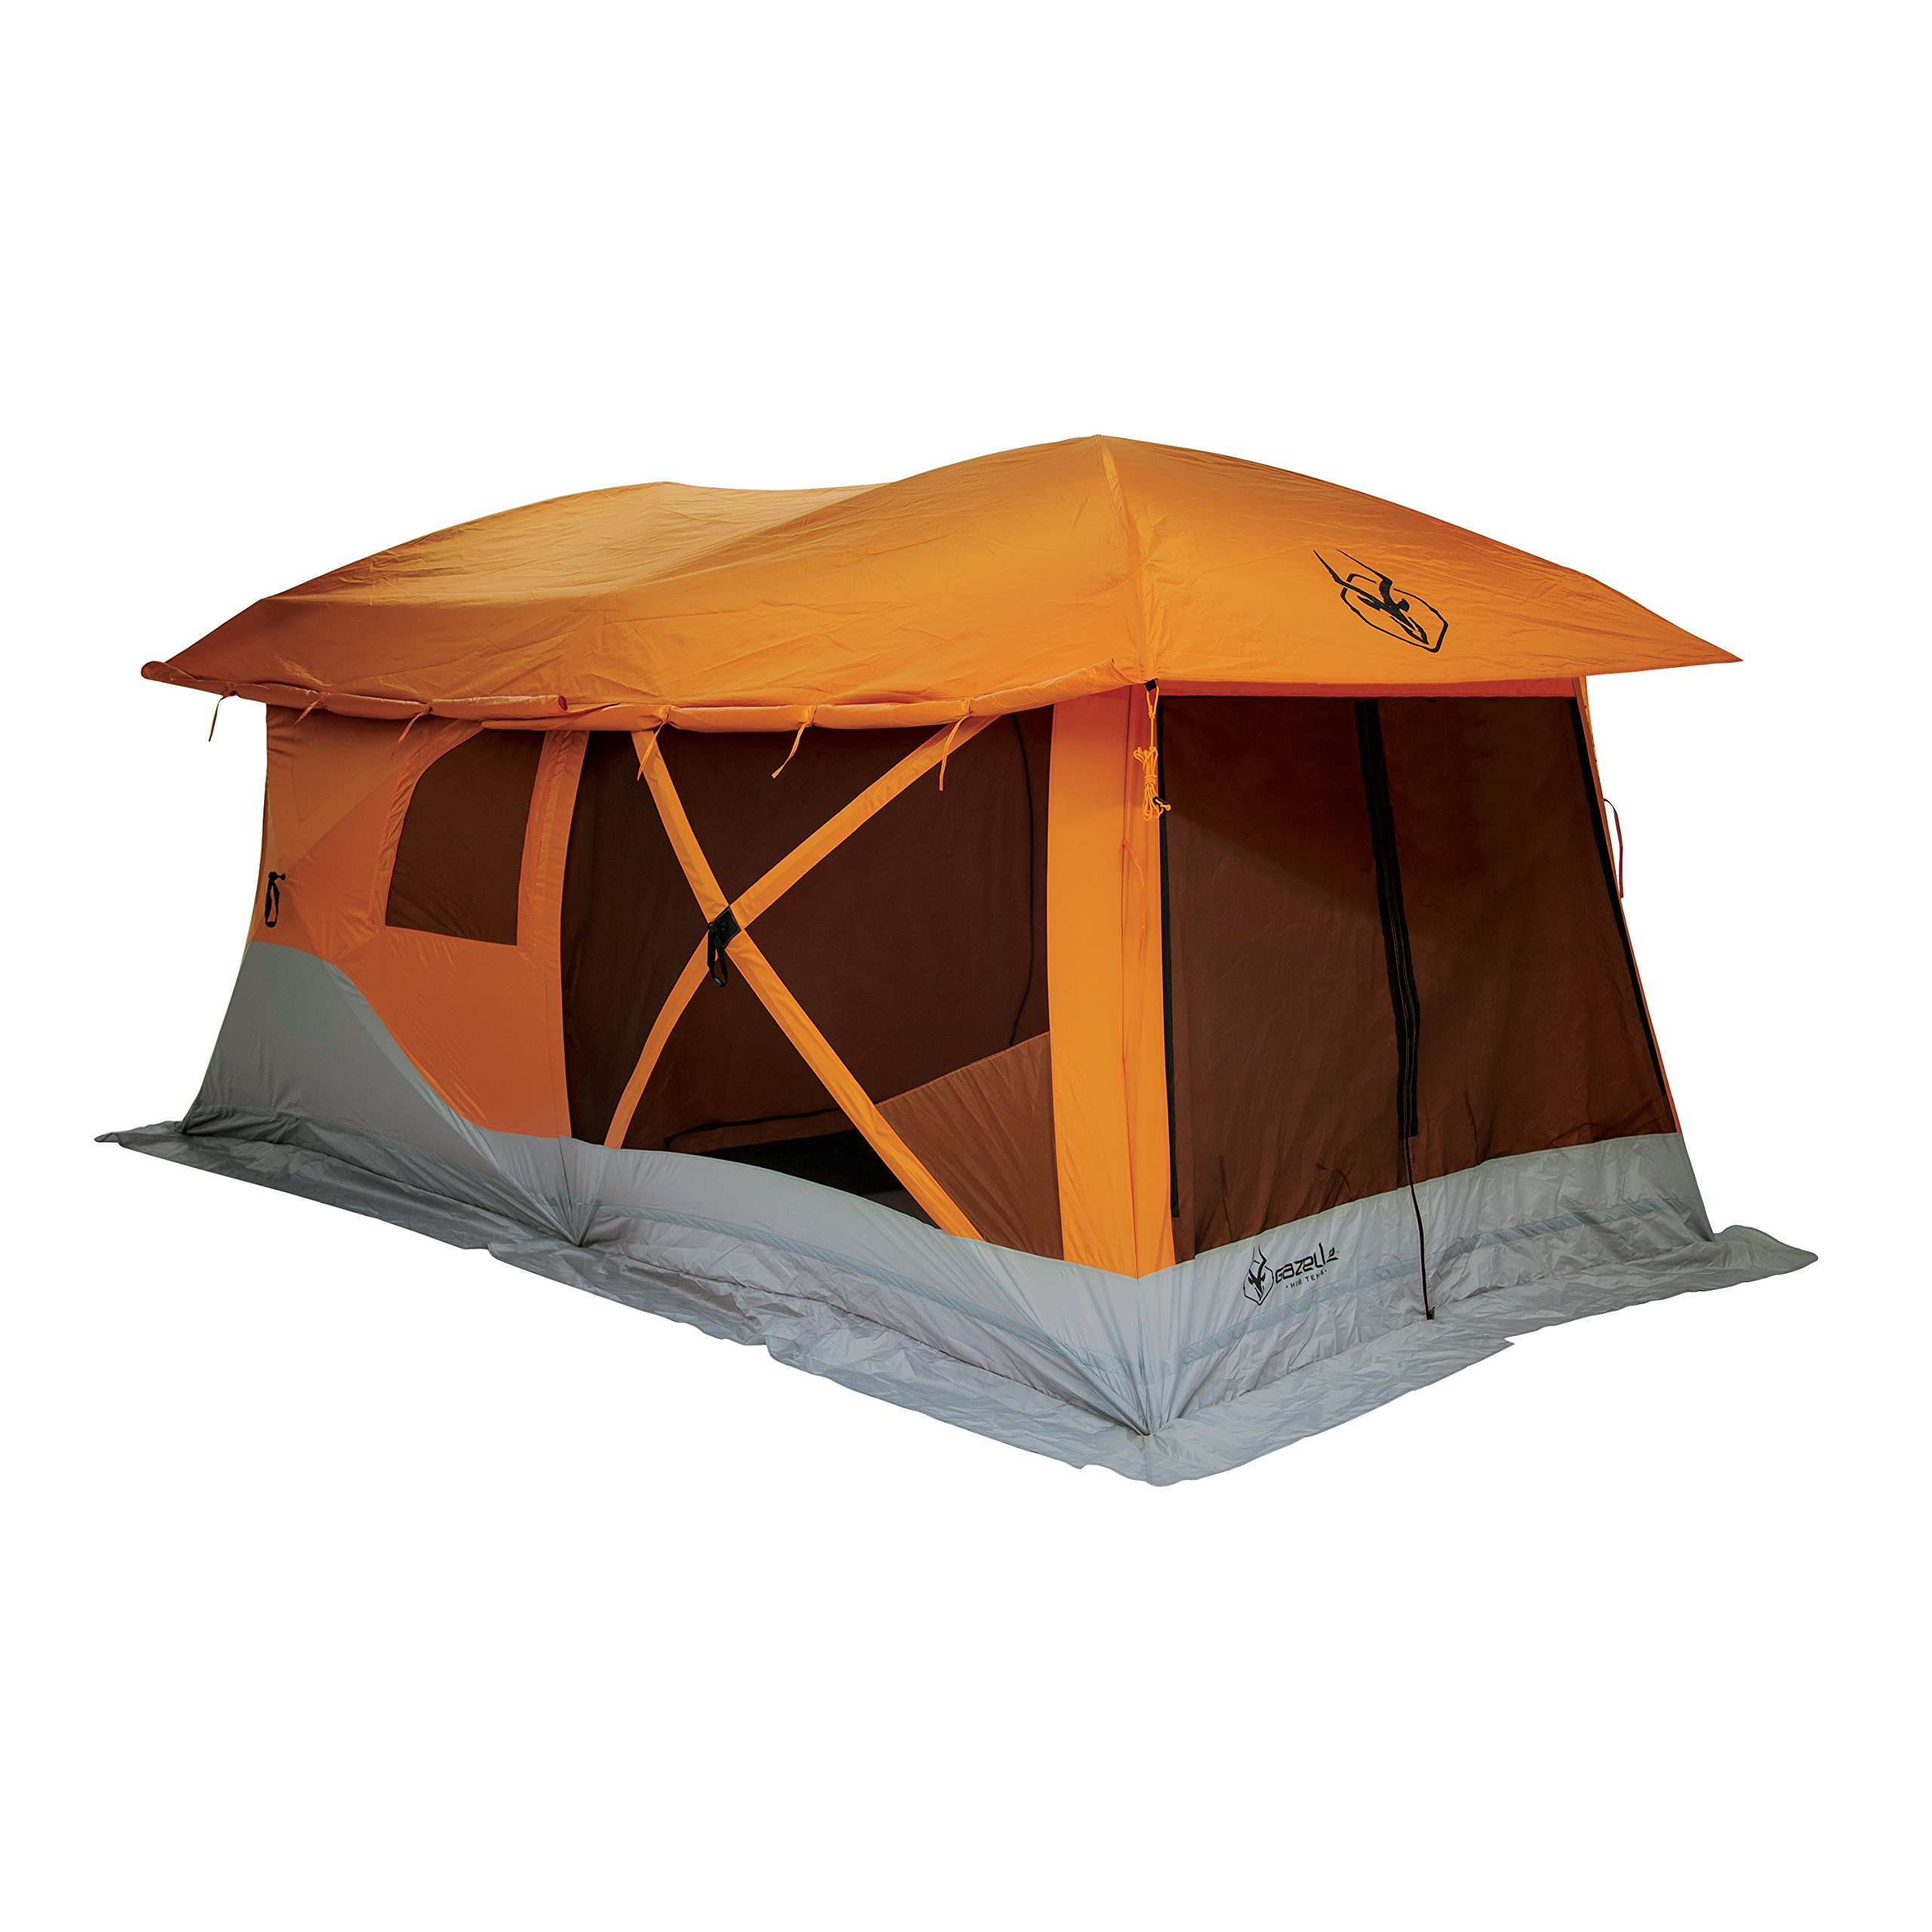 Gazelle 26800 T4 Plus Pop-Up Portable Camping Hub Overlanding Tent, Easy Instant Set Up in 90 Seconds, 4 to 8 Person by Gazelle Tents